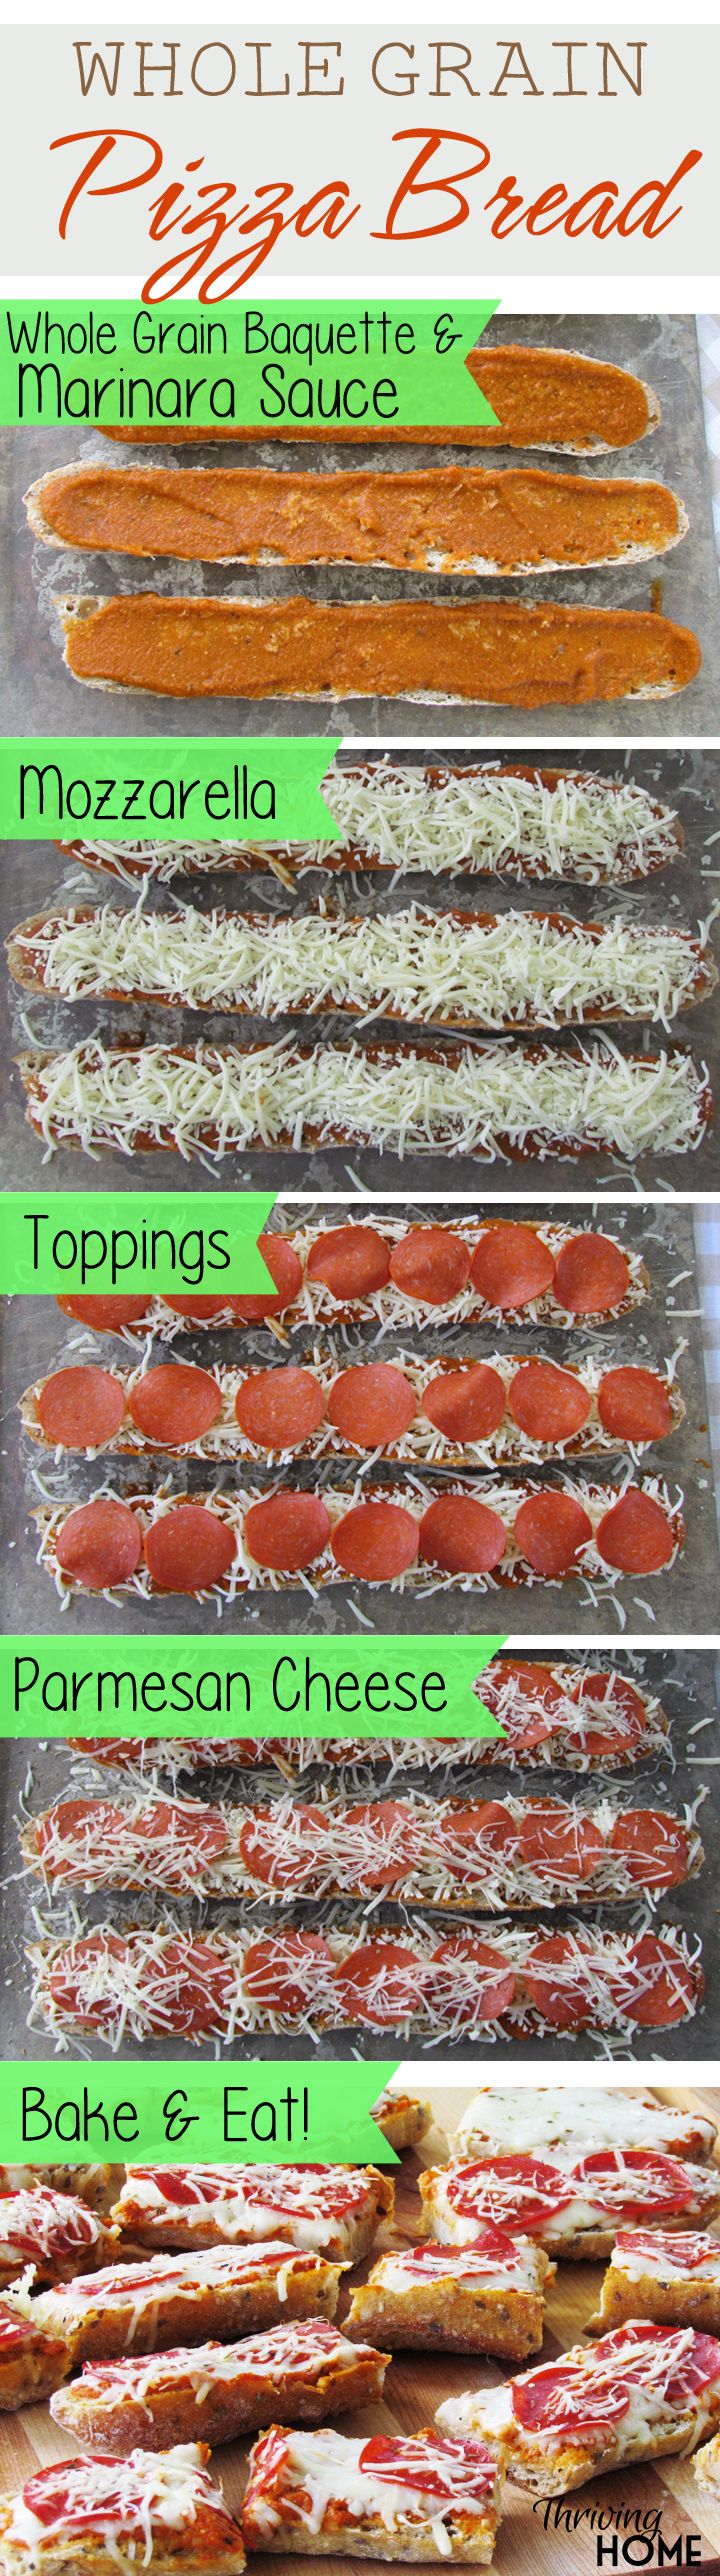 These whole grain pizzas are filled with simple ingredients, require minimal effort, and are a kid favorite! Make some today.